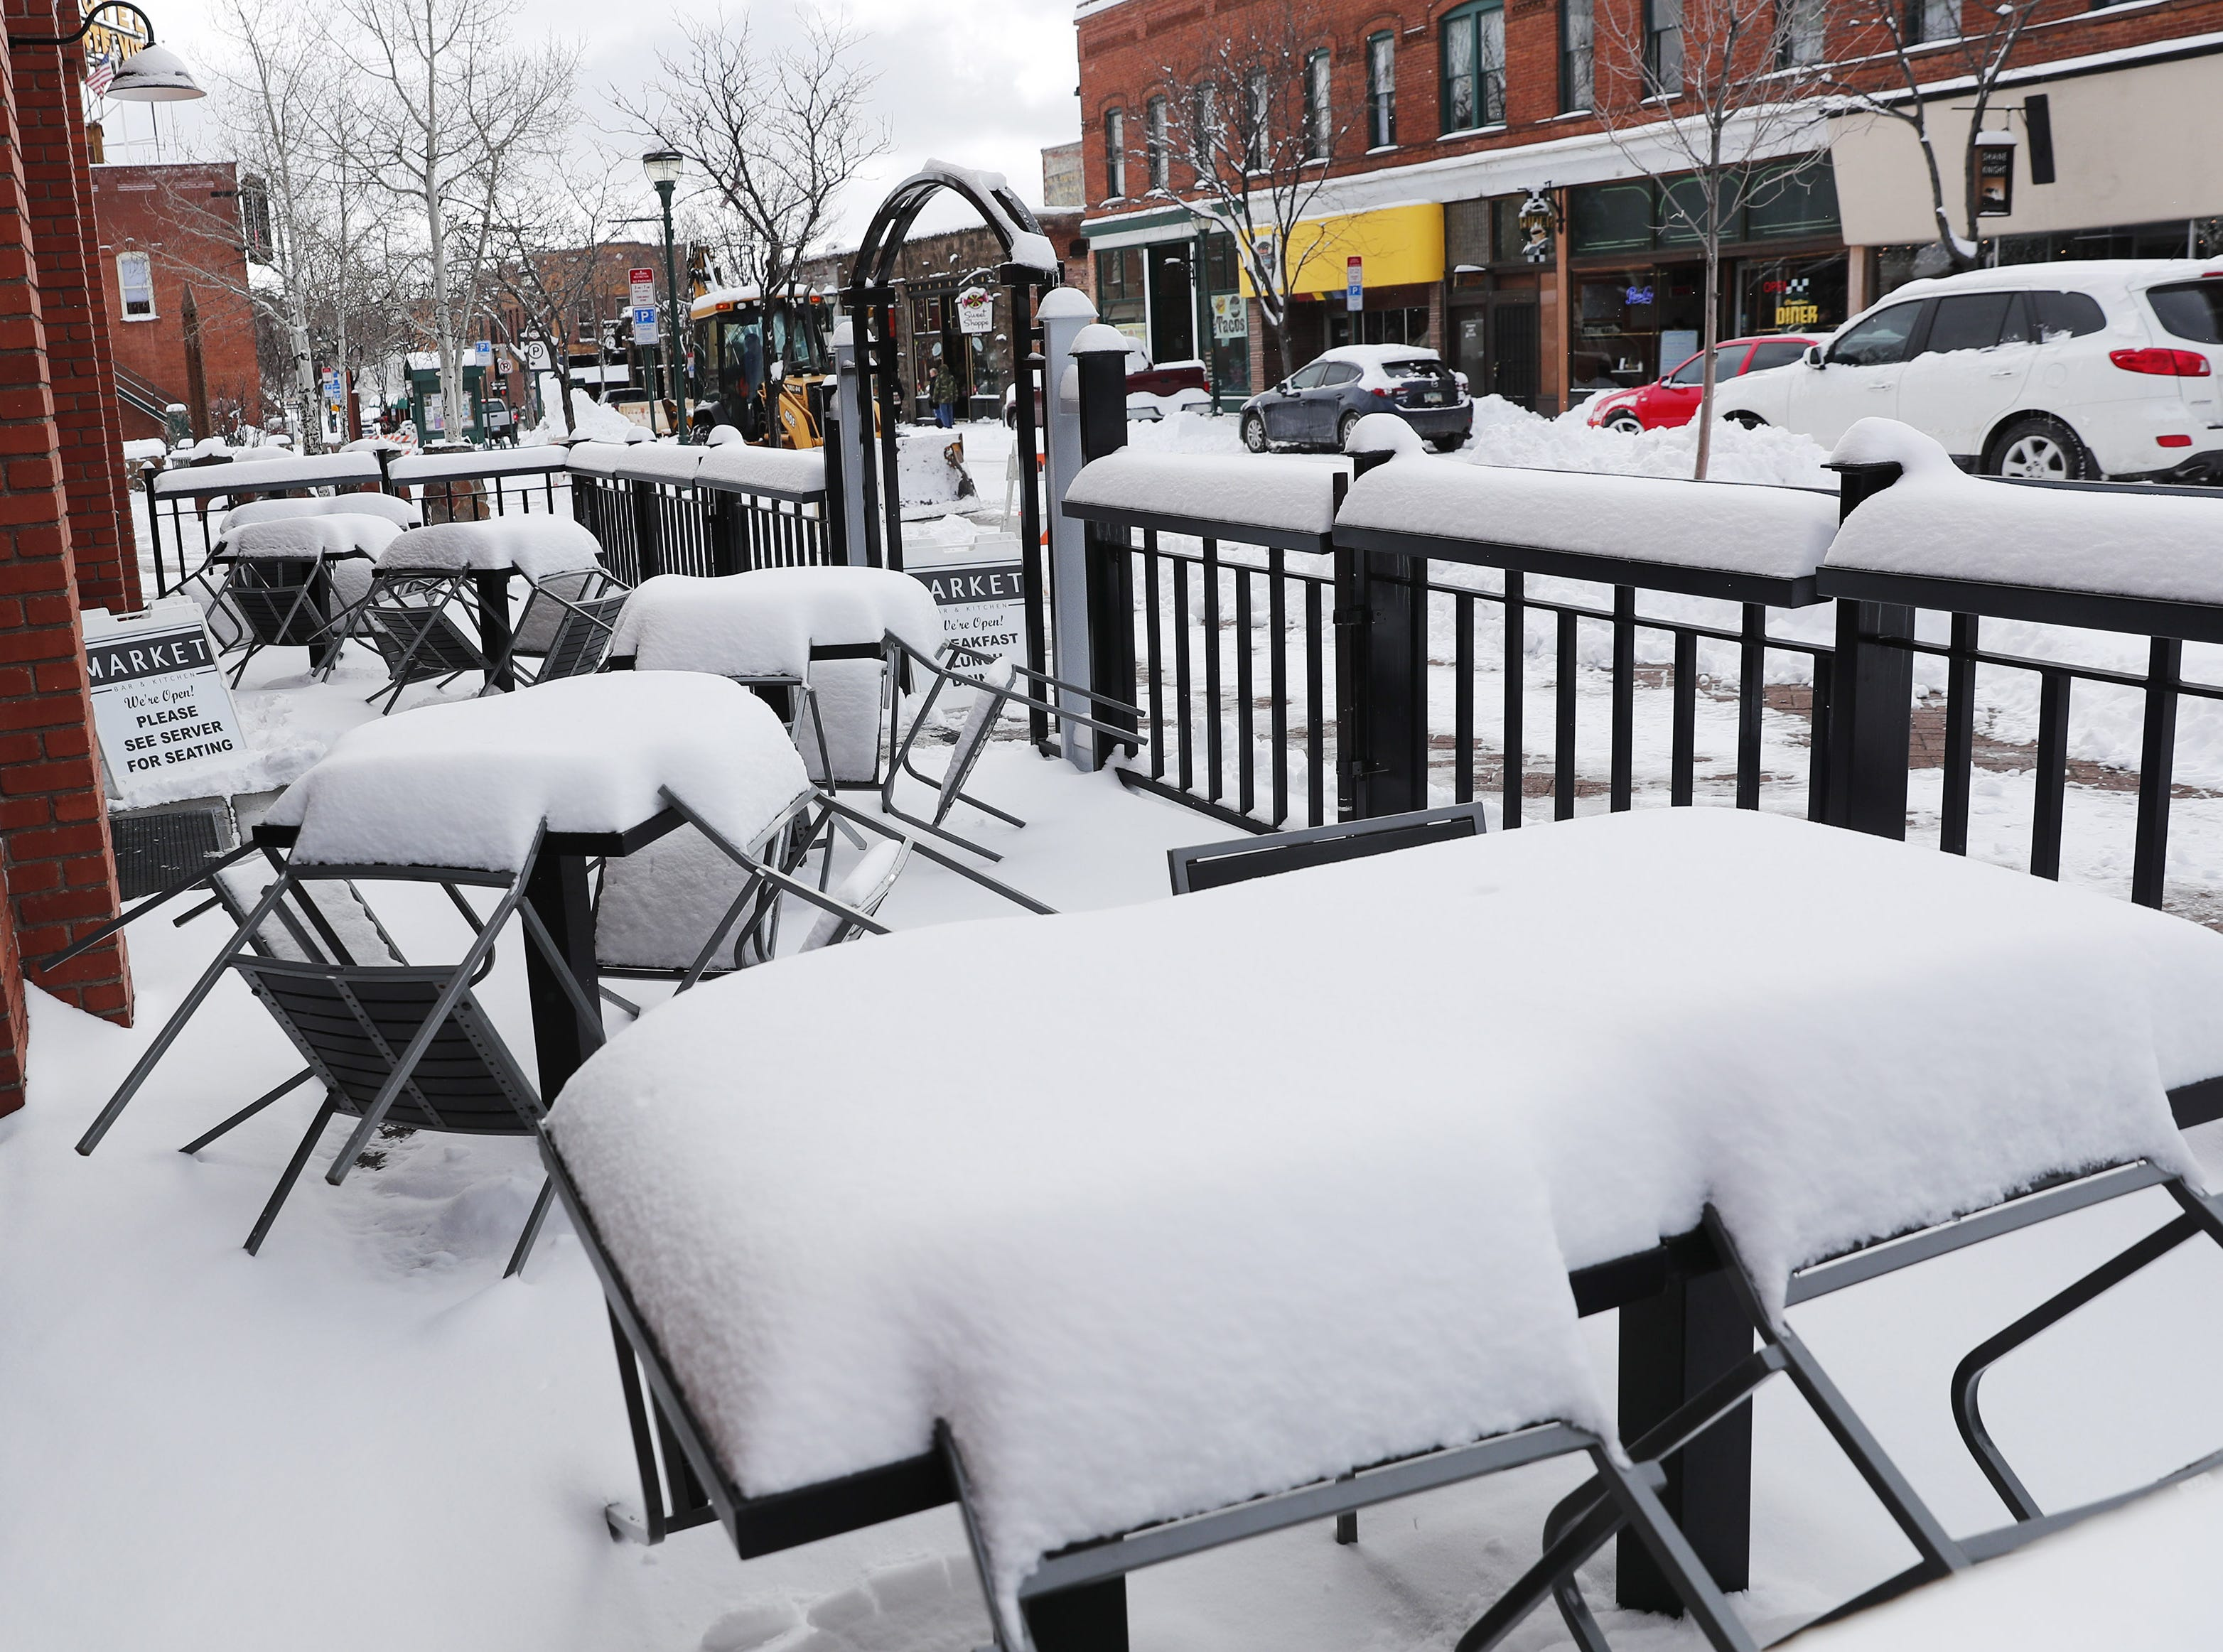 Snow covers tables and chairs on a patio in Flagstaff Feb. 18, 2019.